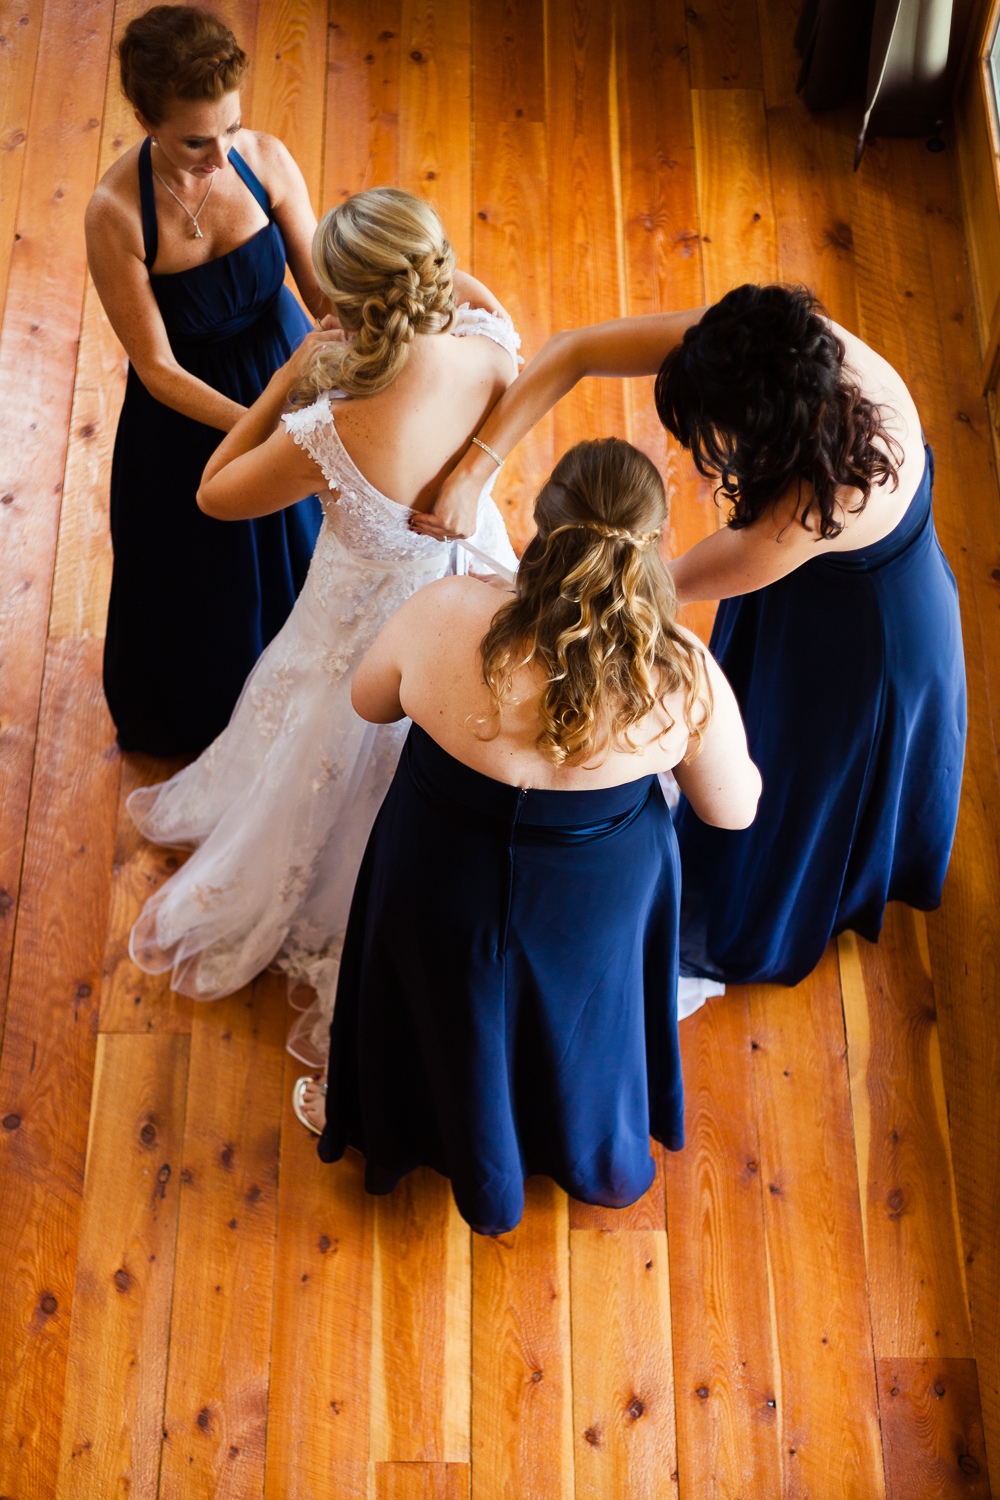 bozeman-montana-wedding-roys-barn-bridesmaids-dress-bride.jpg